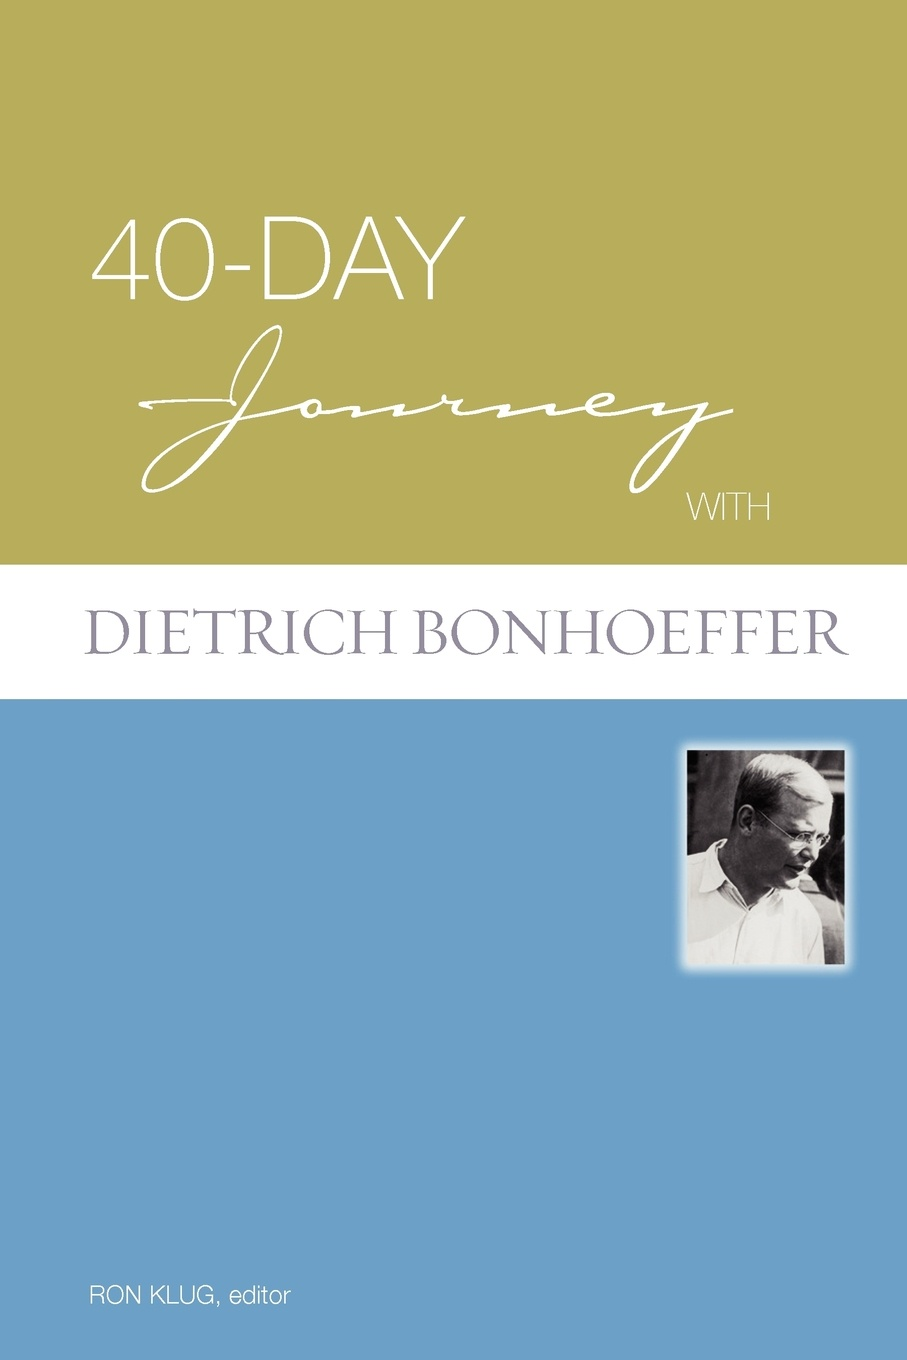 купить Ron Klug, Dietrich Bonhoeffer 40-Day Journey with Dietrich Bonhoeffer по цене 1739 рублей